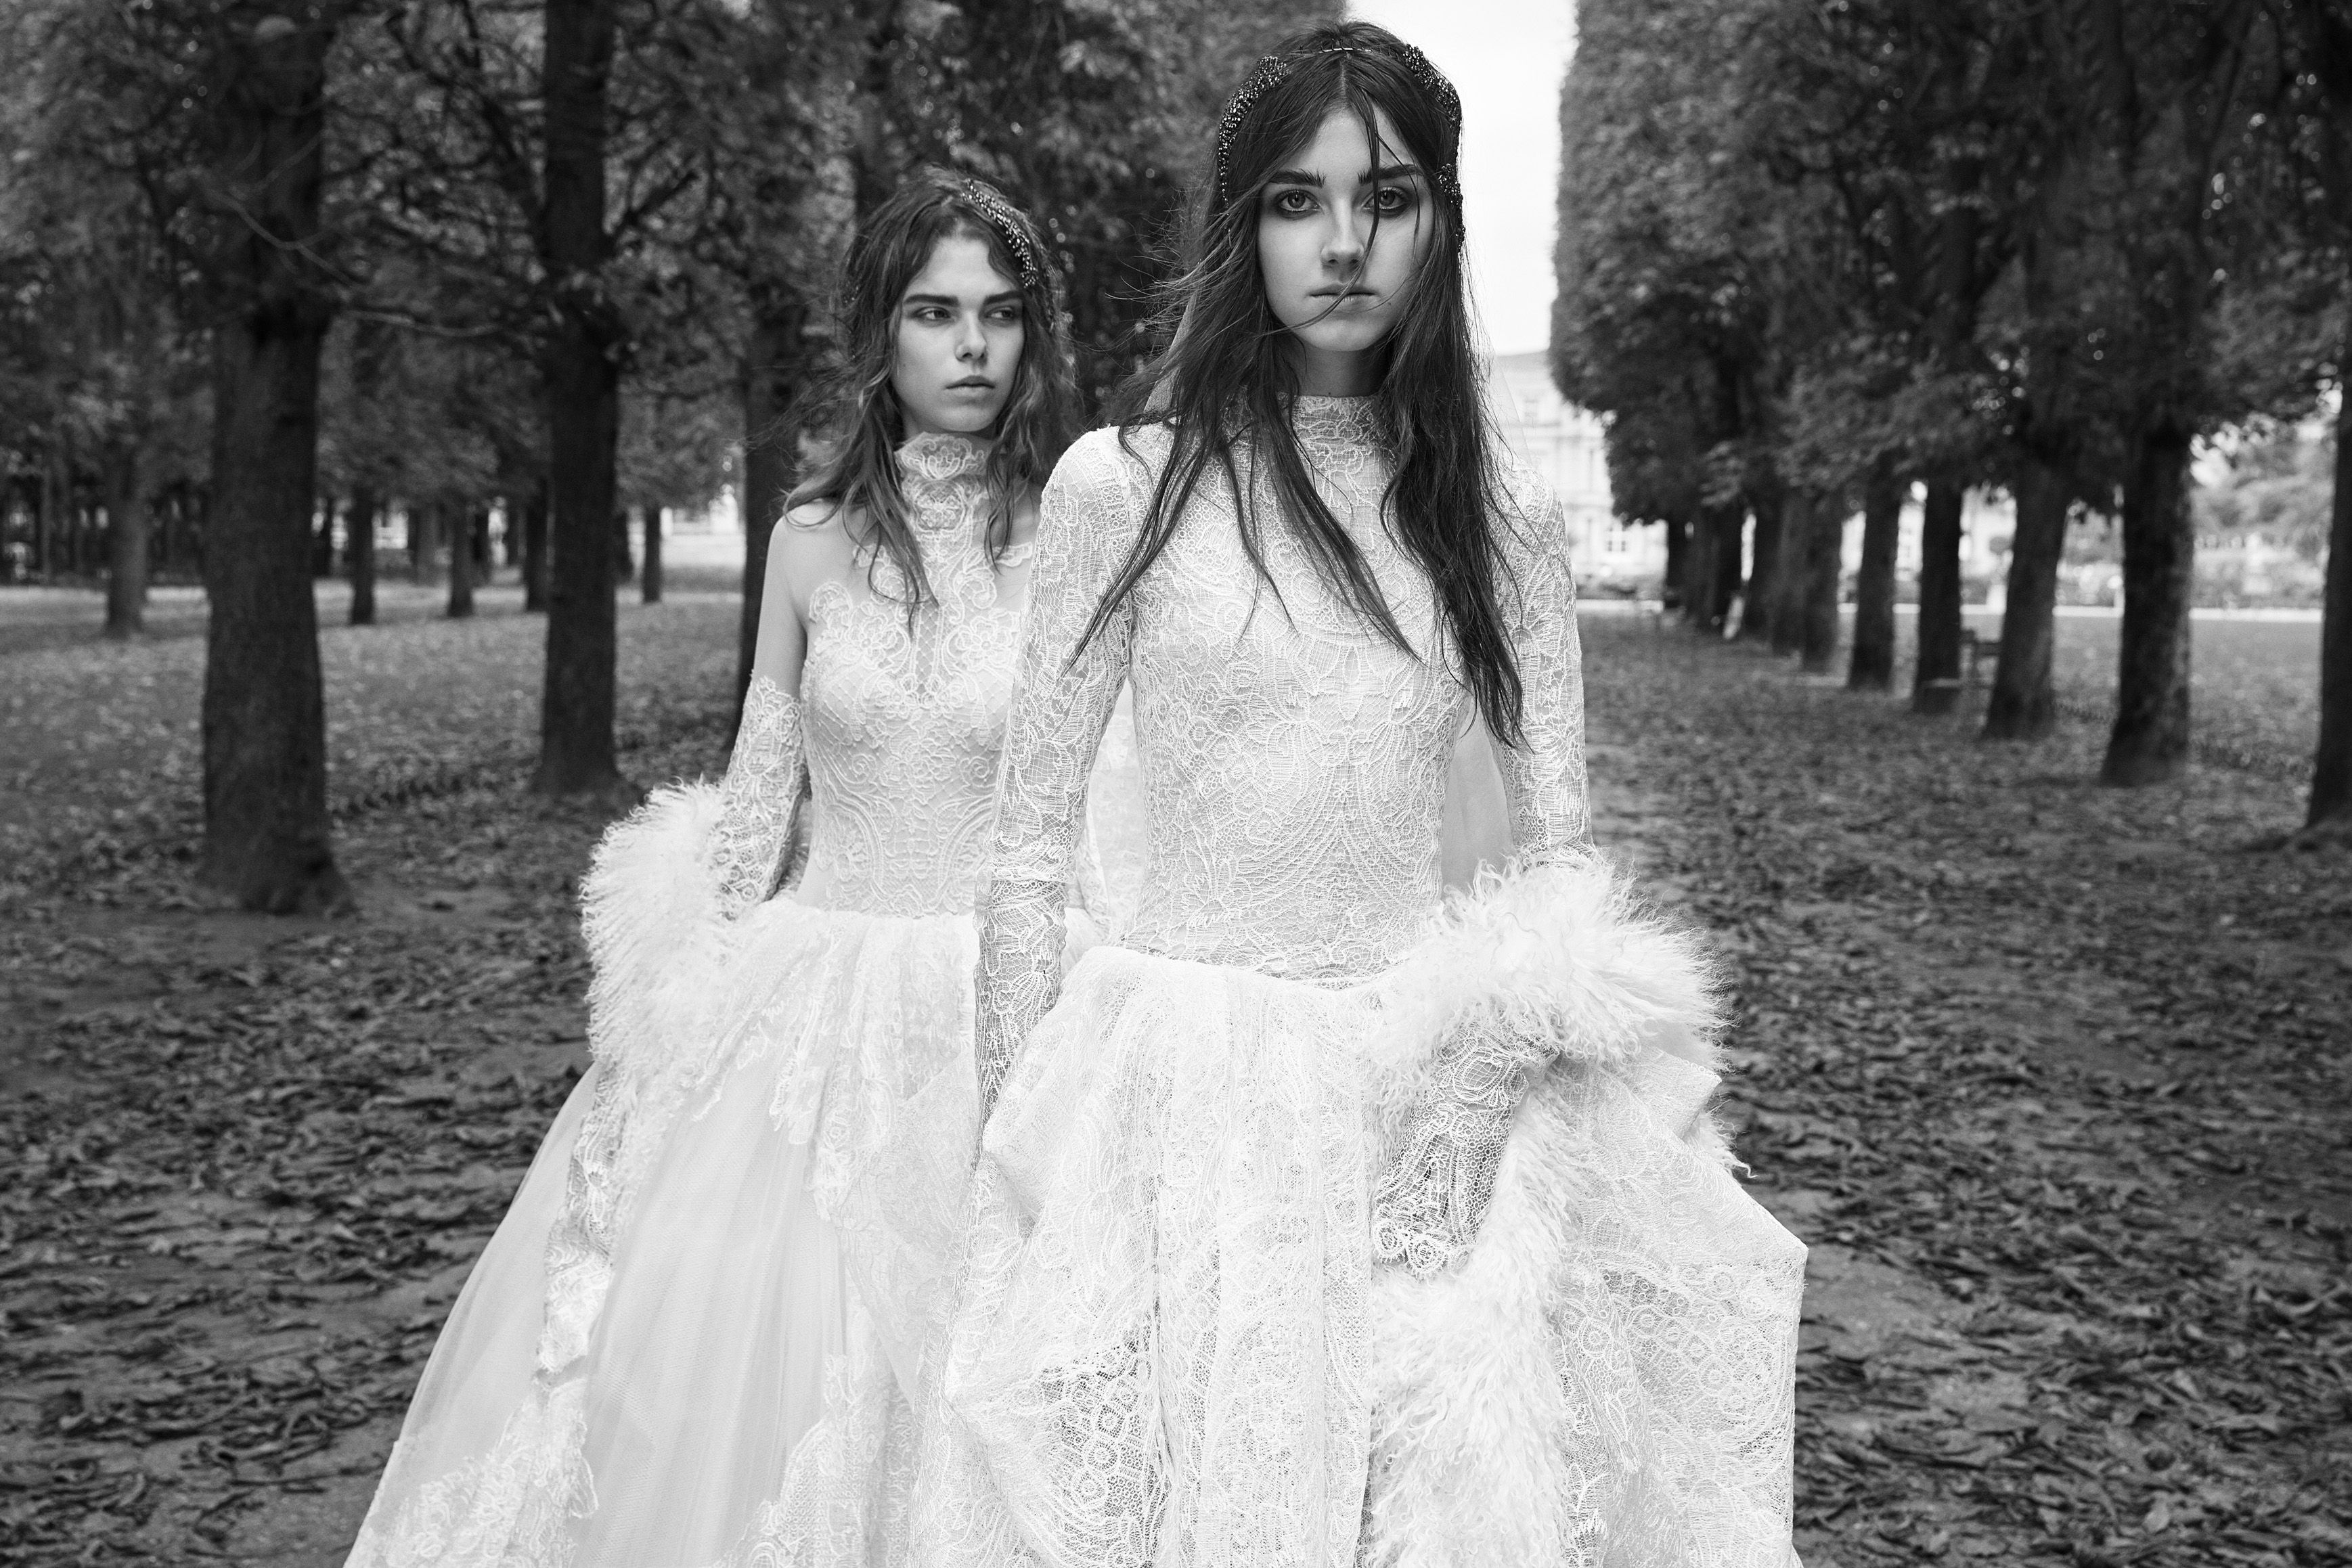 Discussion on this topic: Exclusive: Introducing Vera Wang Bride Fall 2019, exclusive-introducing-vera-wang-bride-fall-2019/